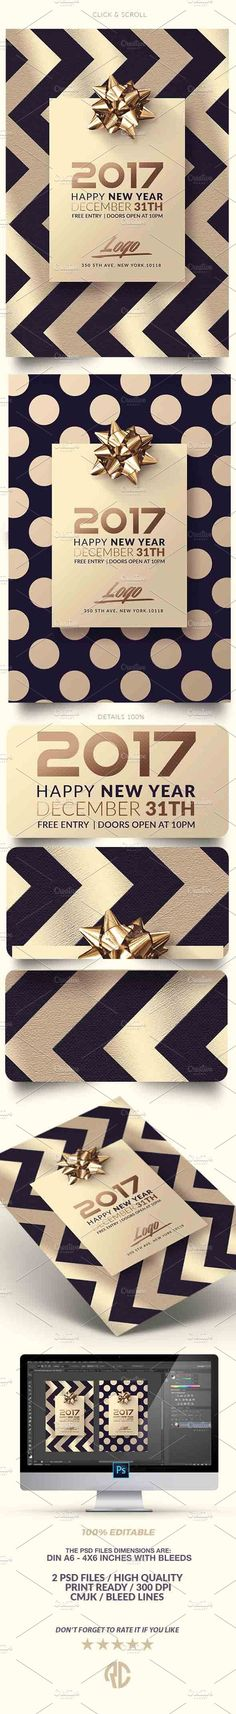 Yeah, so you're going to want to check out New Year Invitation by @romecreation on @CreativeMarket https://crmrkt.com/OV5r8 #newyear #nye2017